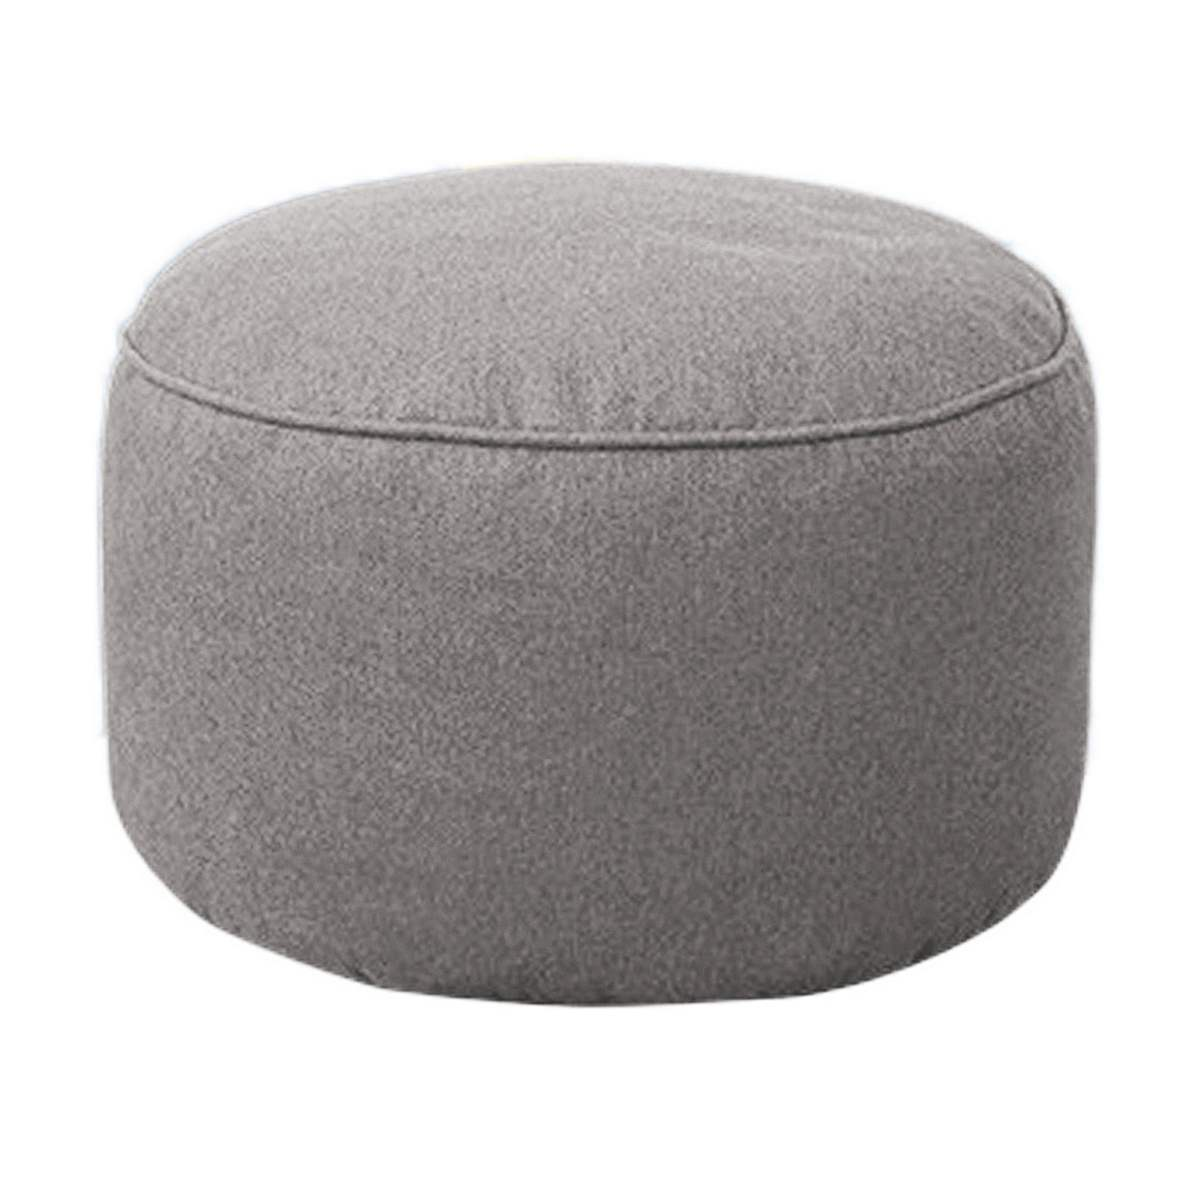 Bean Bag Footstool Us 14 72 8 Off 8 Colors Cotton Stool Cover Home Sofa Round Footstool Soft Bean Bags Sofa Lounger Washable Without Filler For Living Room Table In